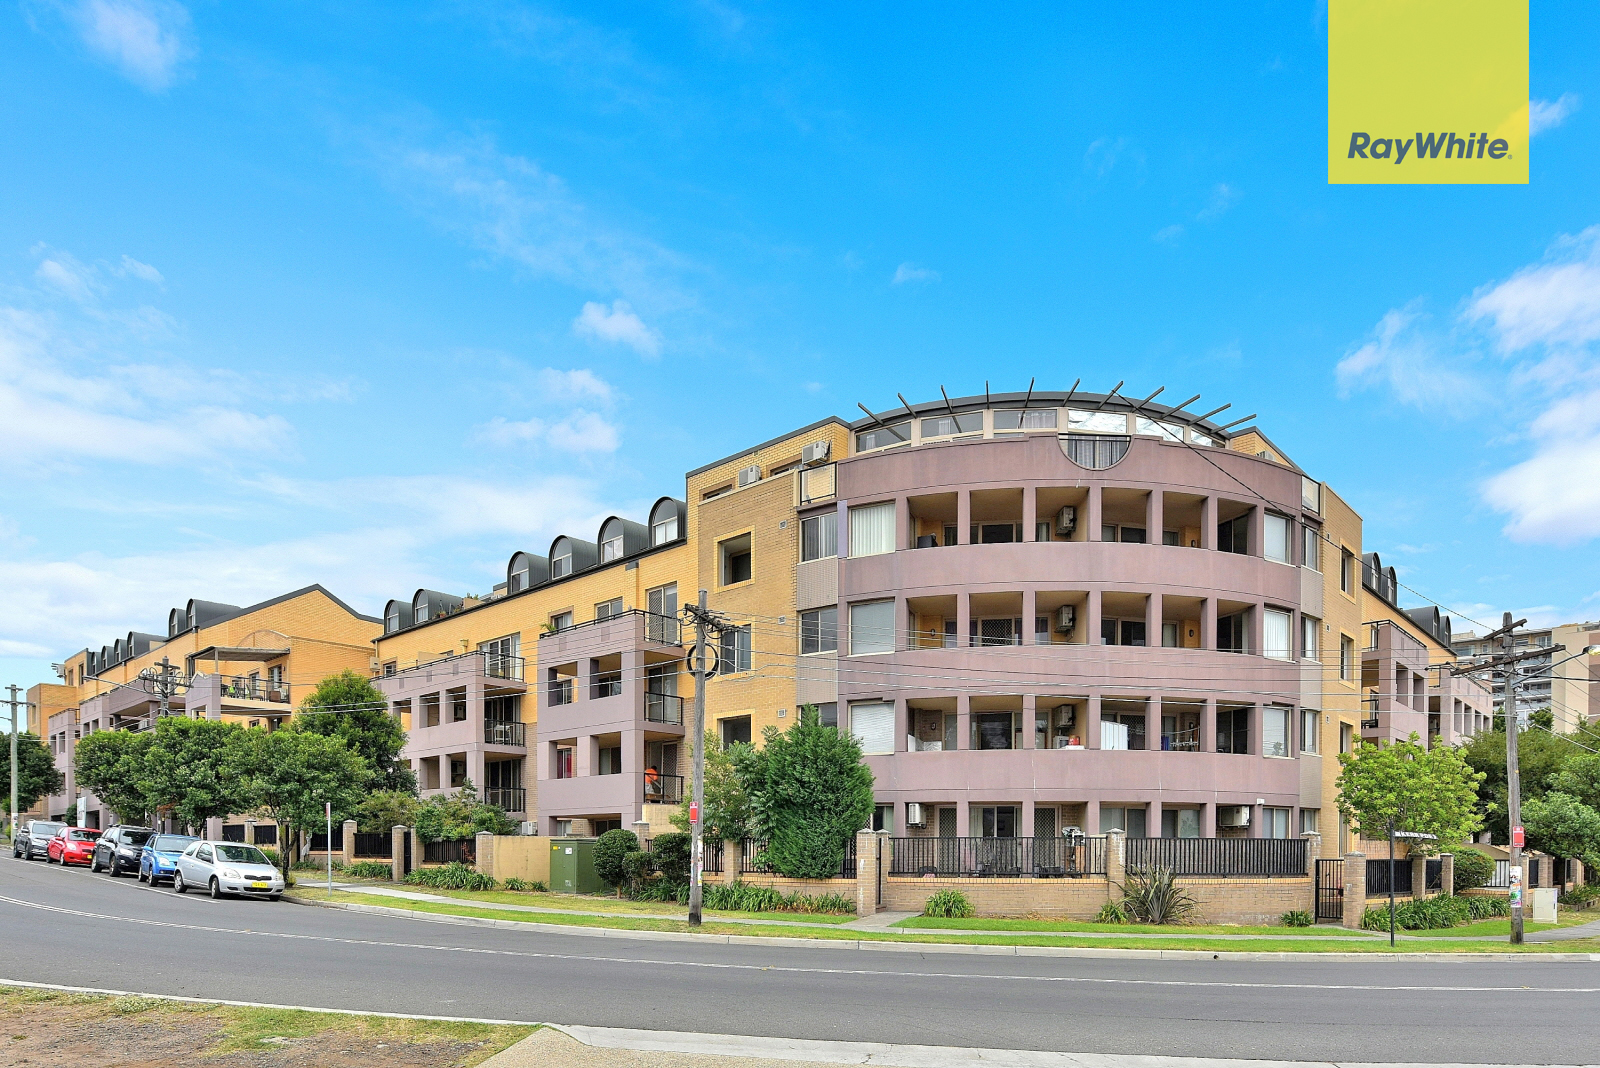 8/9 Marion Street, Auburn NSW 2144 - Apartment For Sale ...